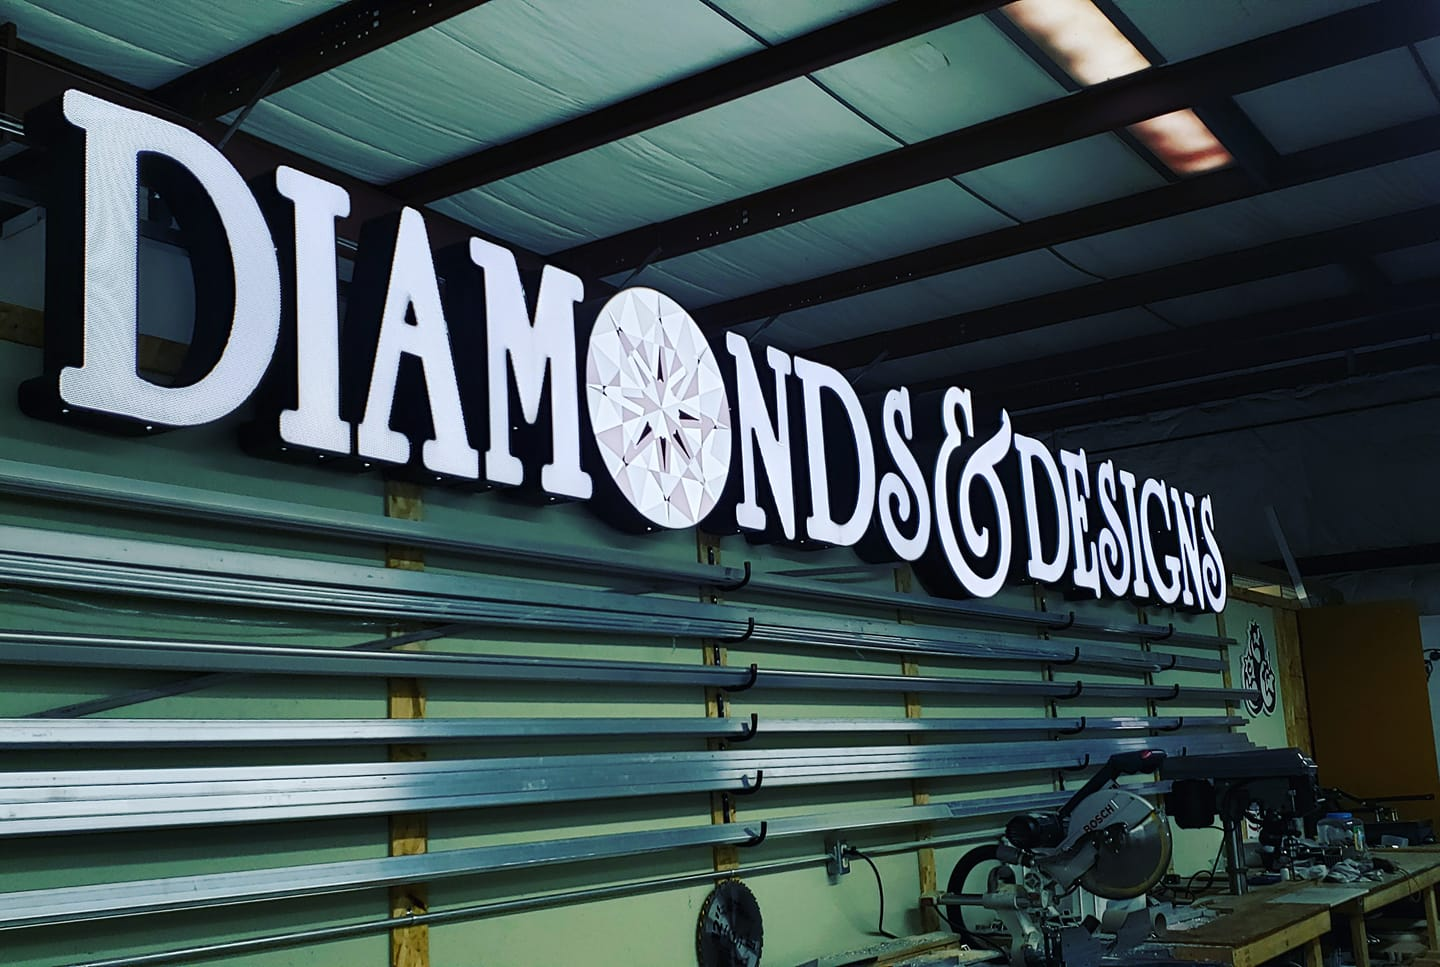 diamonds signage